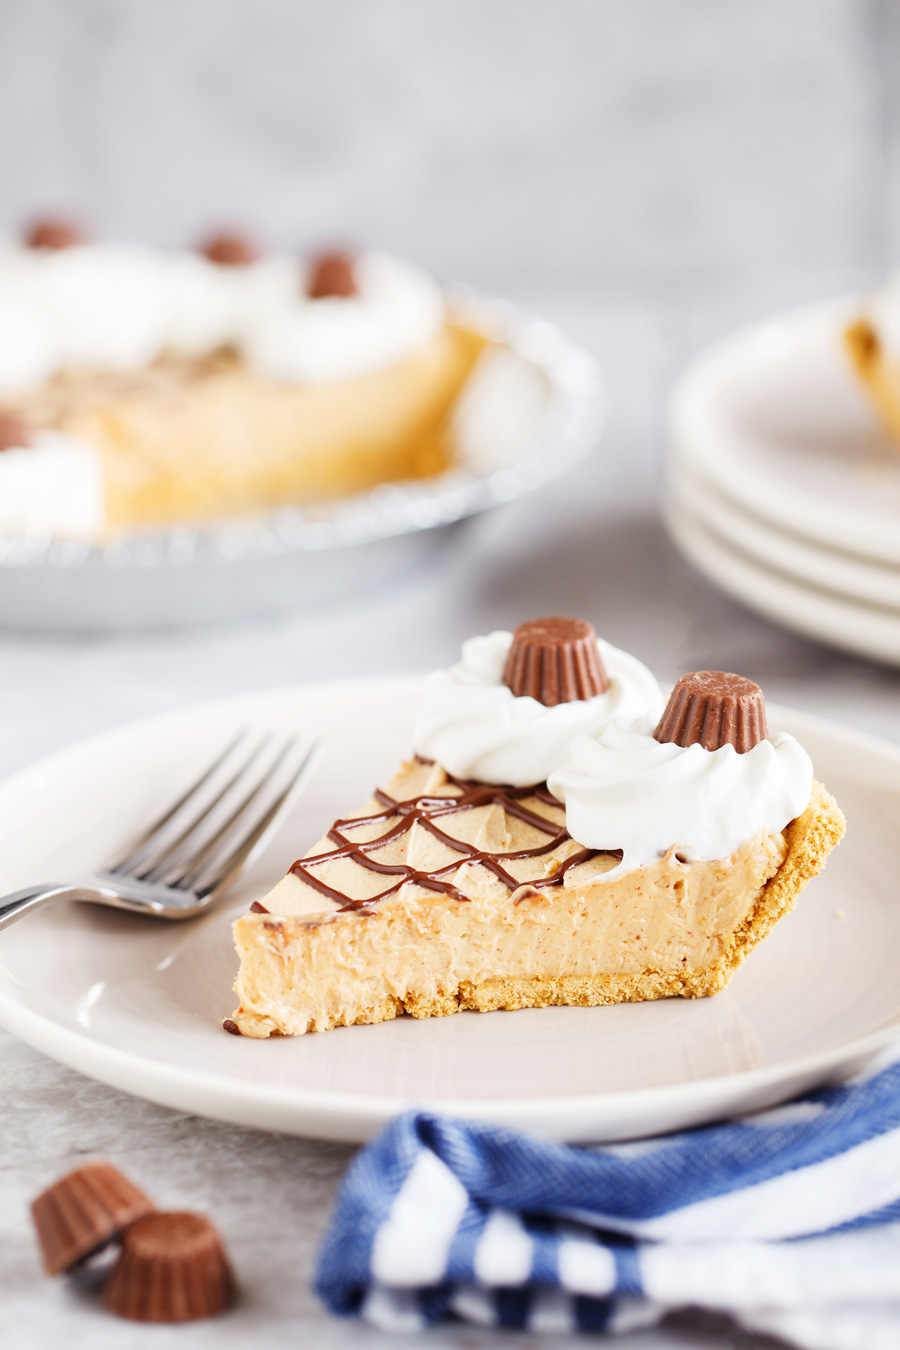 Slice of Frozen Peanut Butter pie on Plate